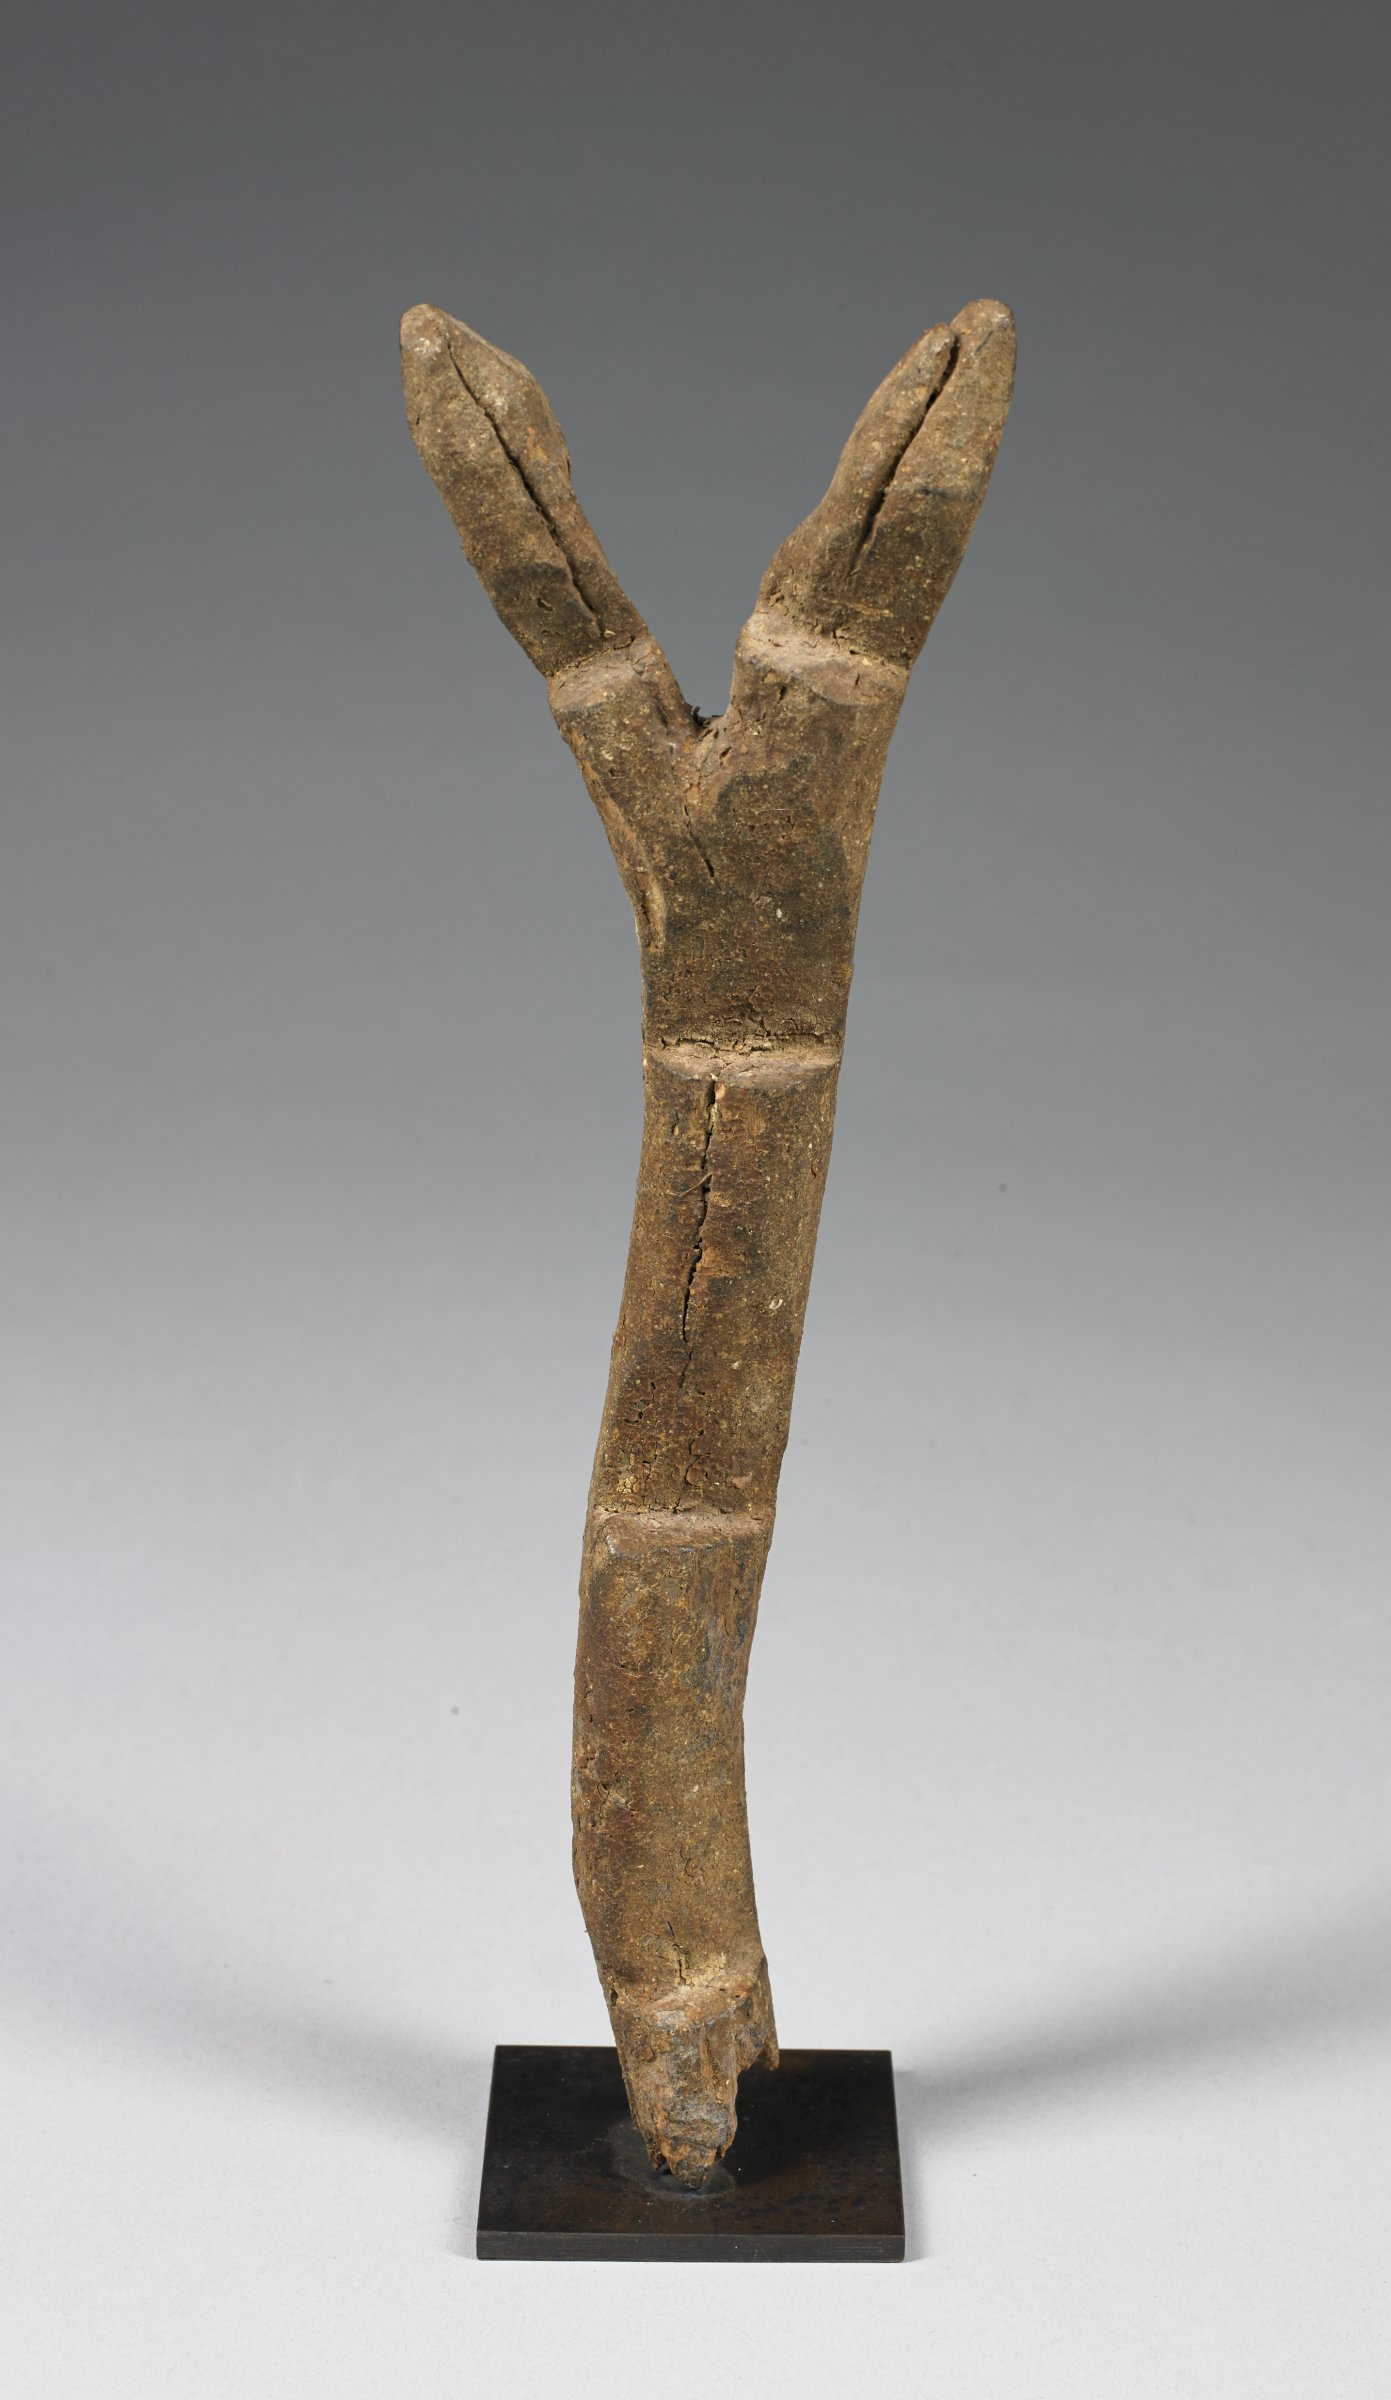 Miniature Ladder, Dogon people, Mali, African, wood